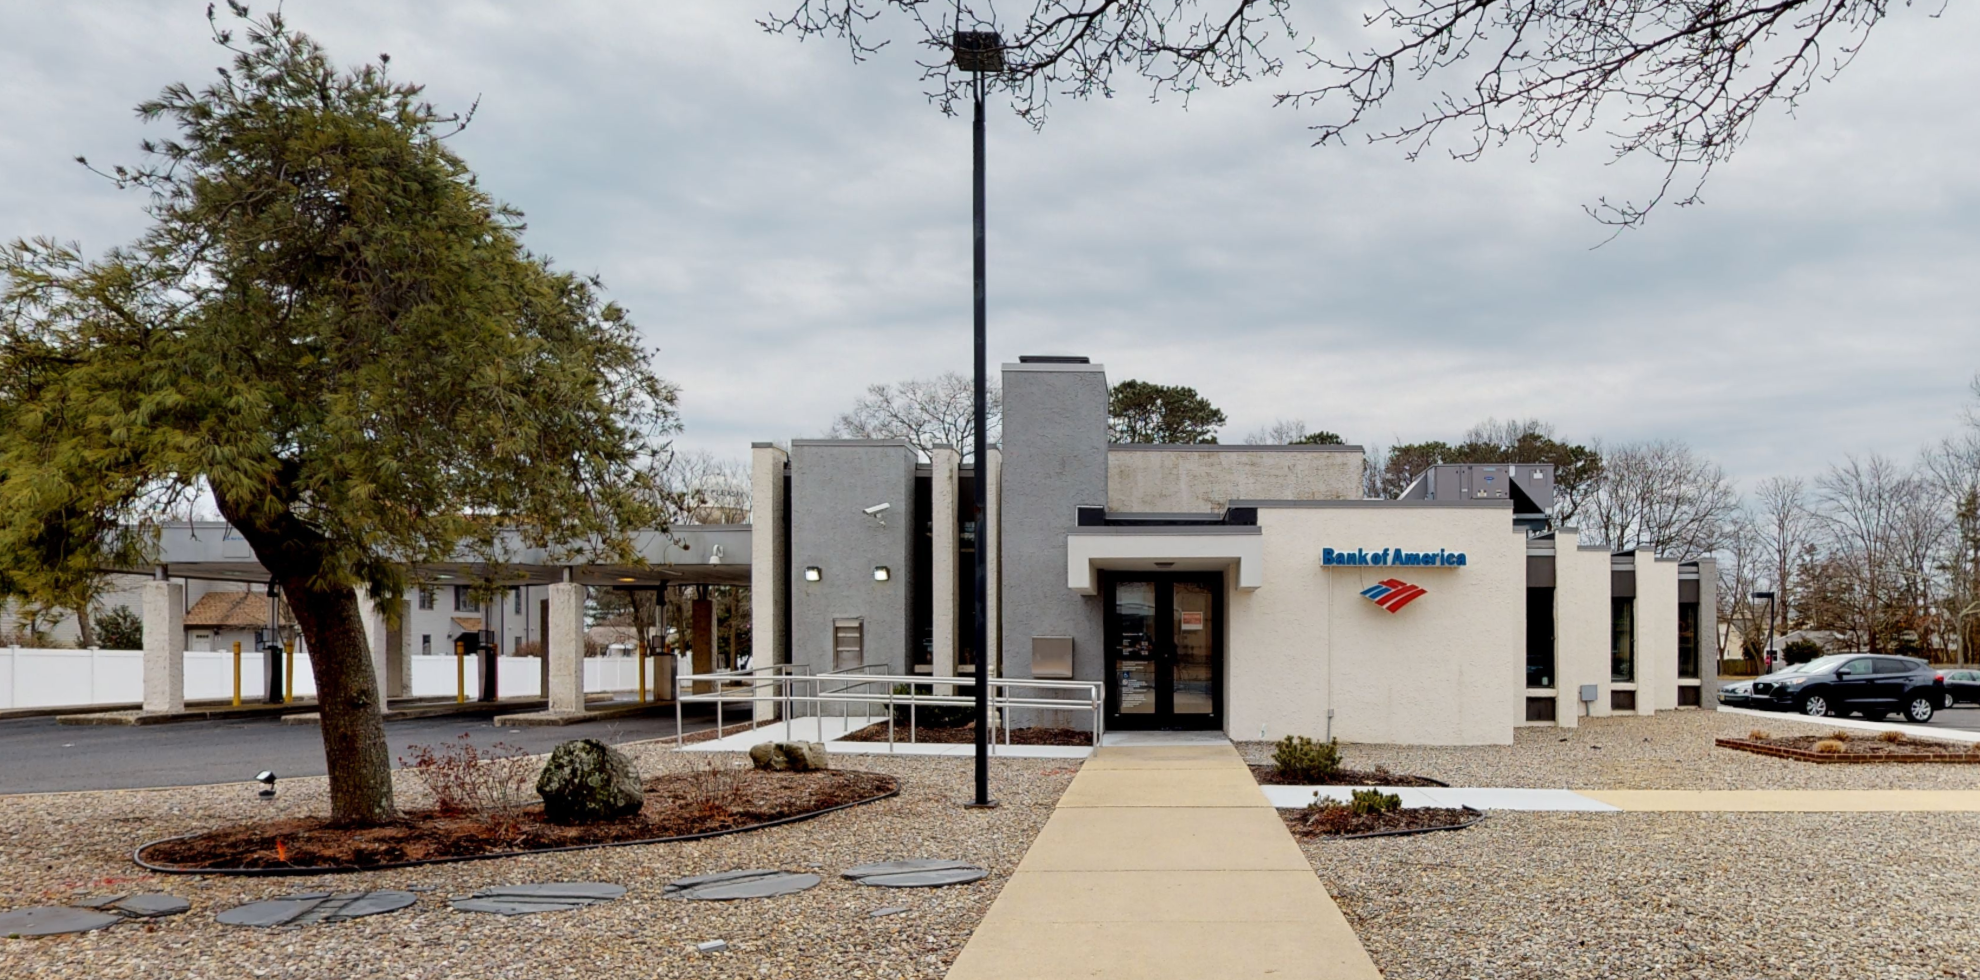 Bank of America financial center with drive-thru ATM | 2232 Bridge Ave, Point Pleasant, NJ 08742